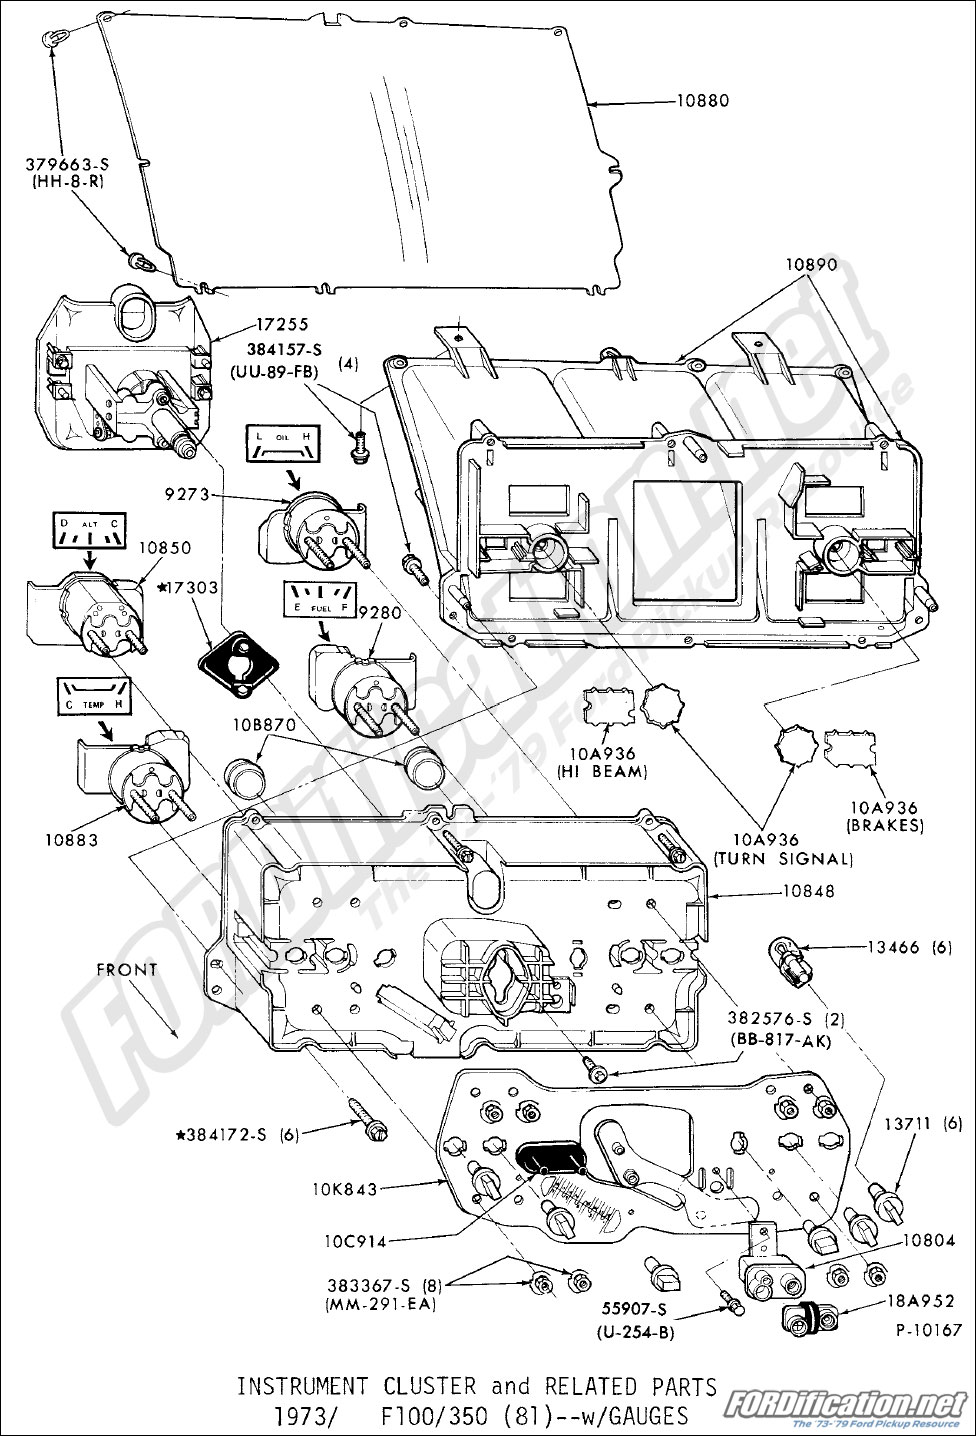 hight resolution of instrument cluster and related parts 1973 1979 f100 350 81 with gauges